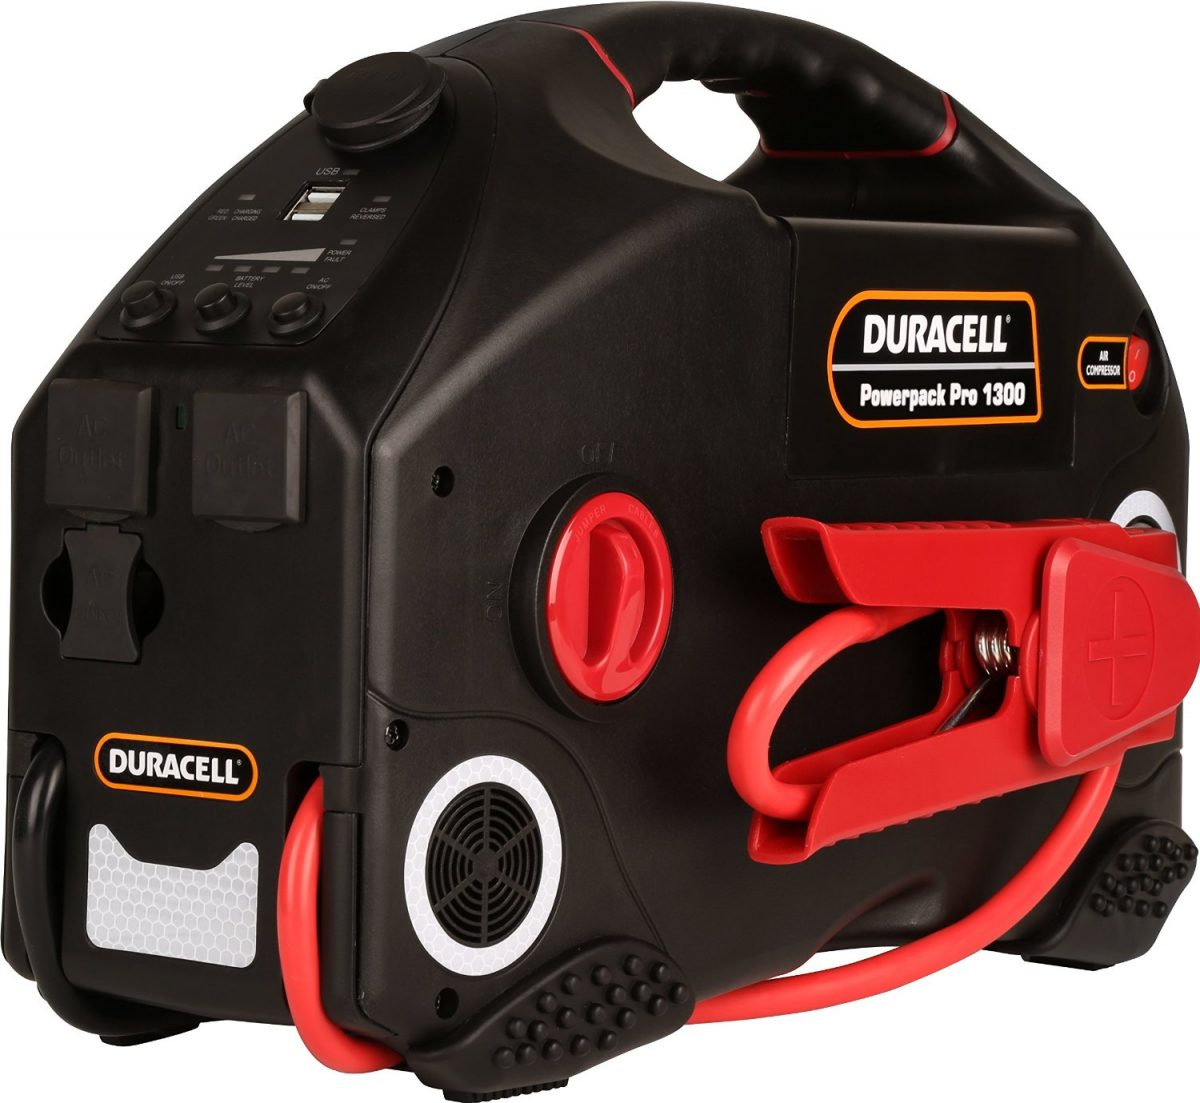 Review of Duracell 600 Watt / 1300 Amp Powerpack Pro Jump Starter